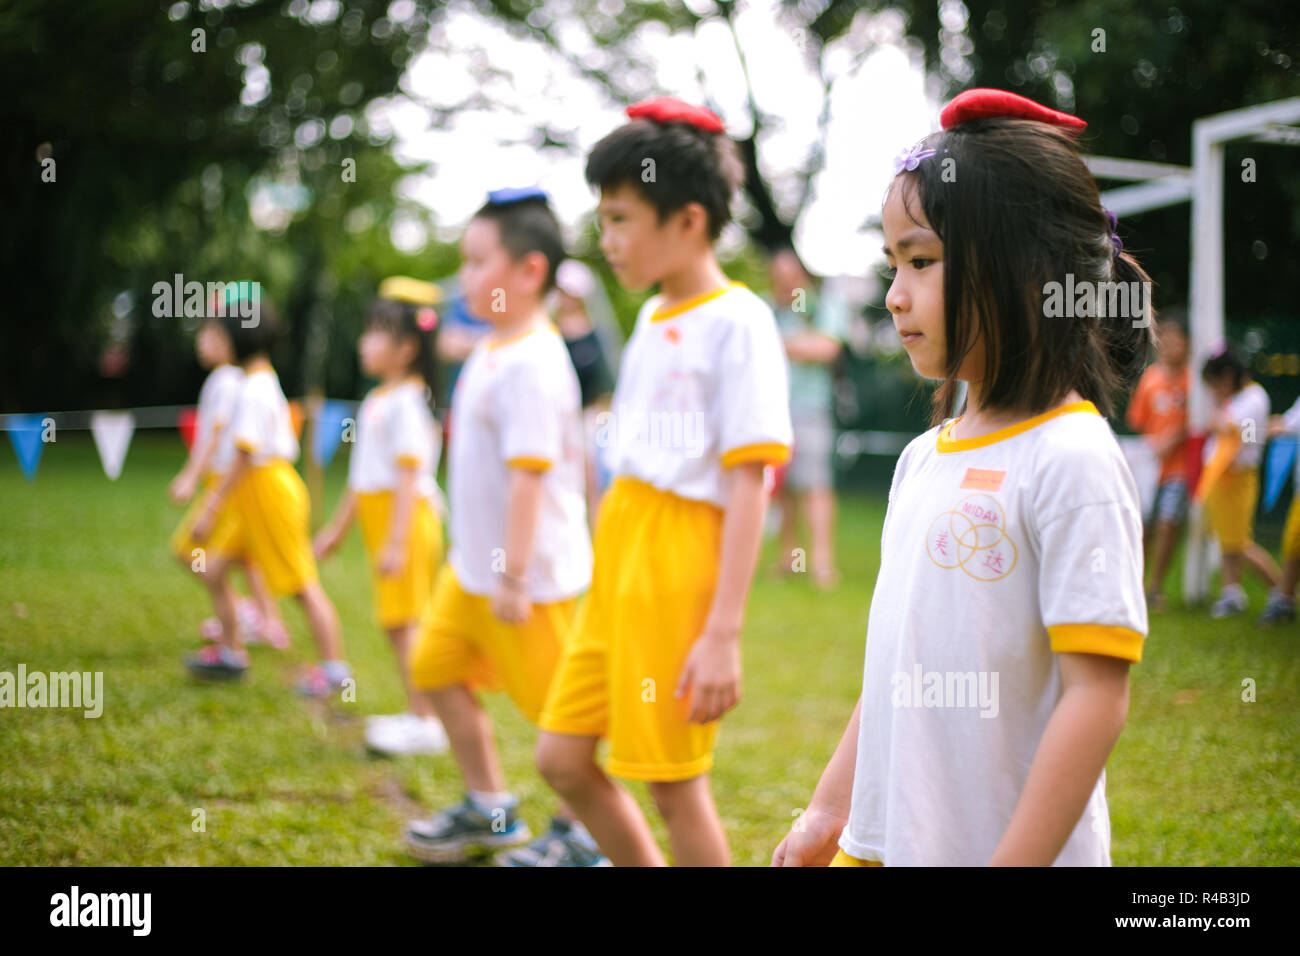 Children ready to play bean bag competition during their kindergarten sports day - Stock Image